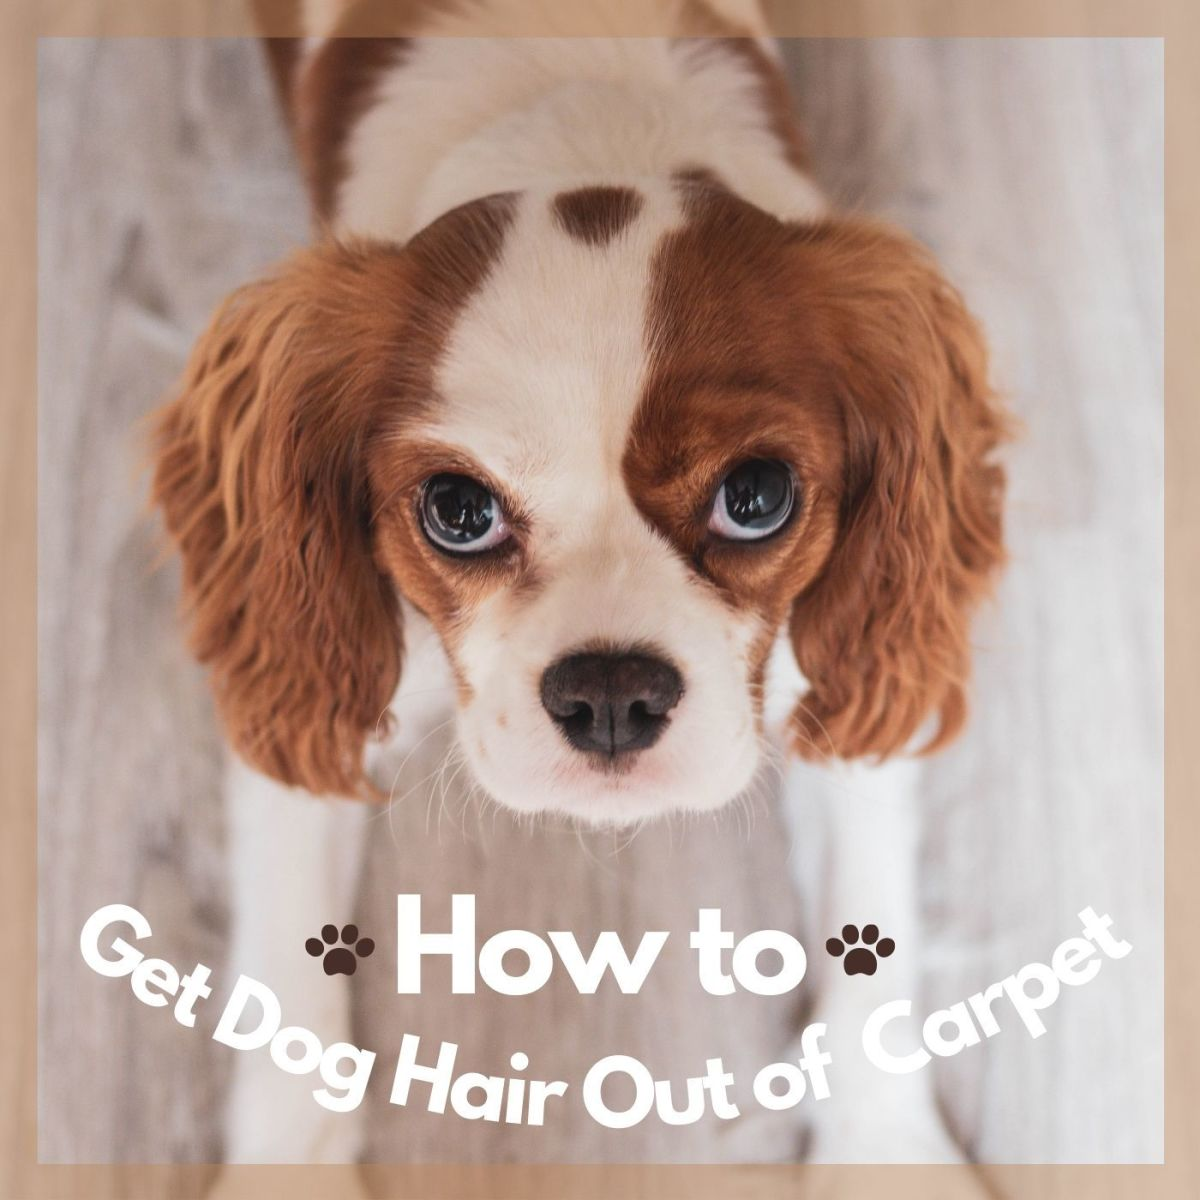 Follow these steps to get rid of your pet hair everywhere!